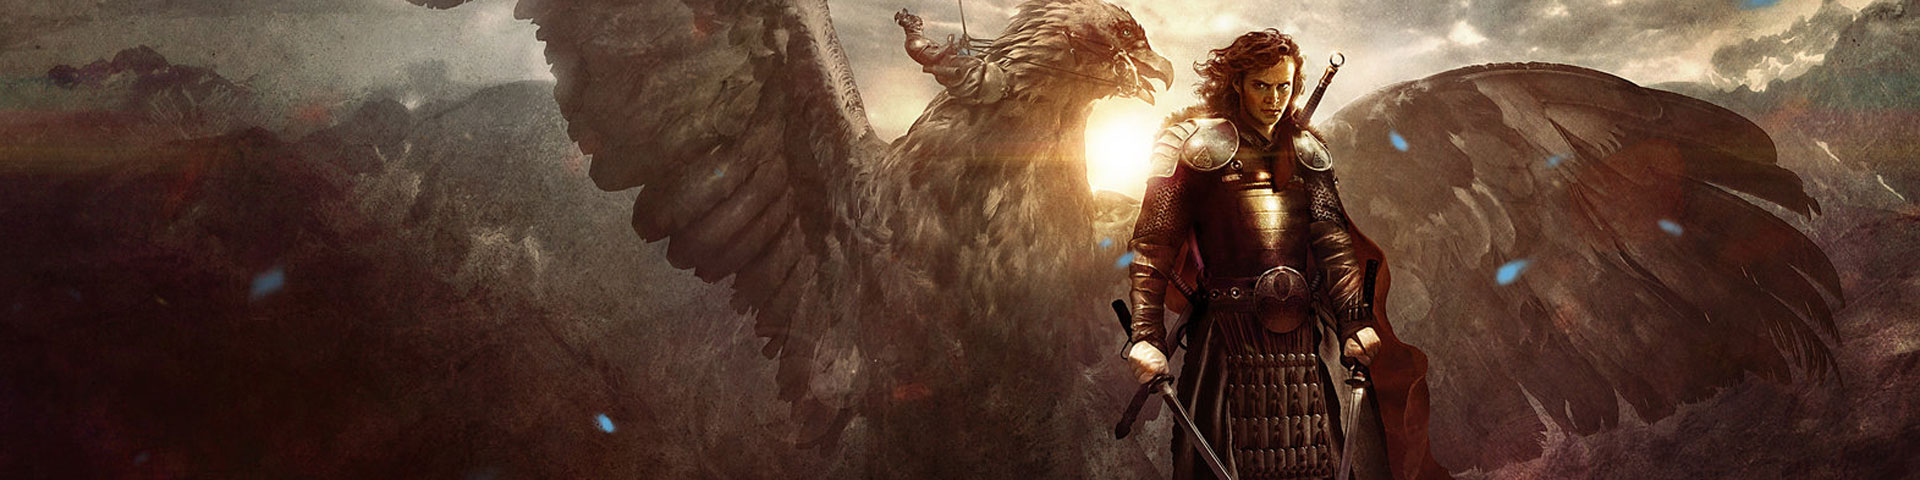 A human warrior stands with two blades drawn while a winged creature - perhaps a griffin - rises behind him.